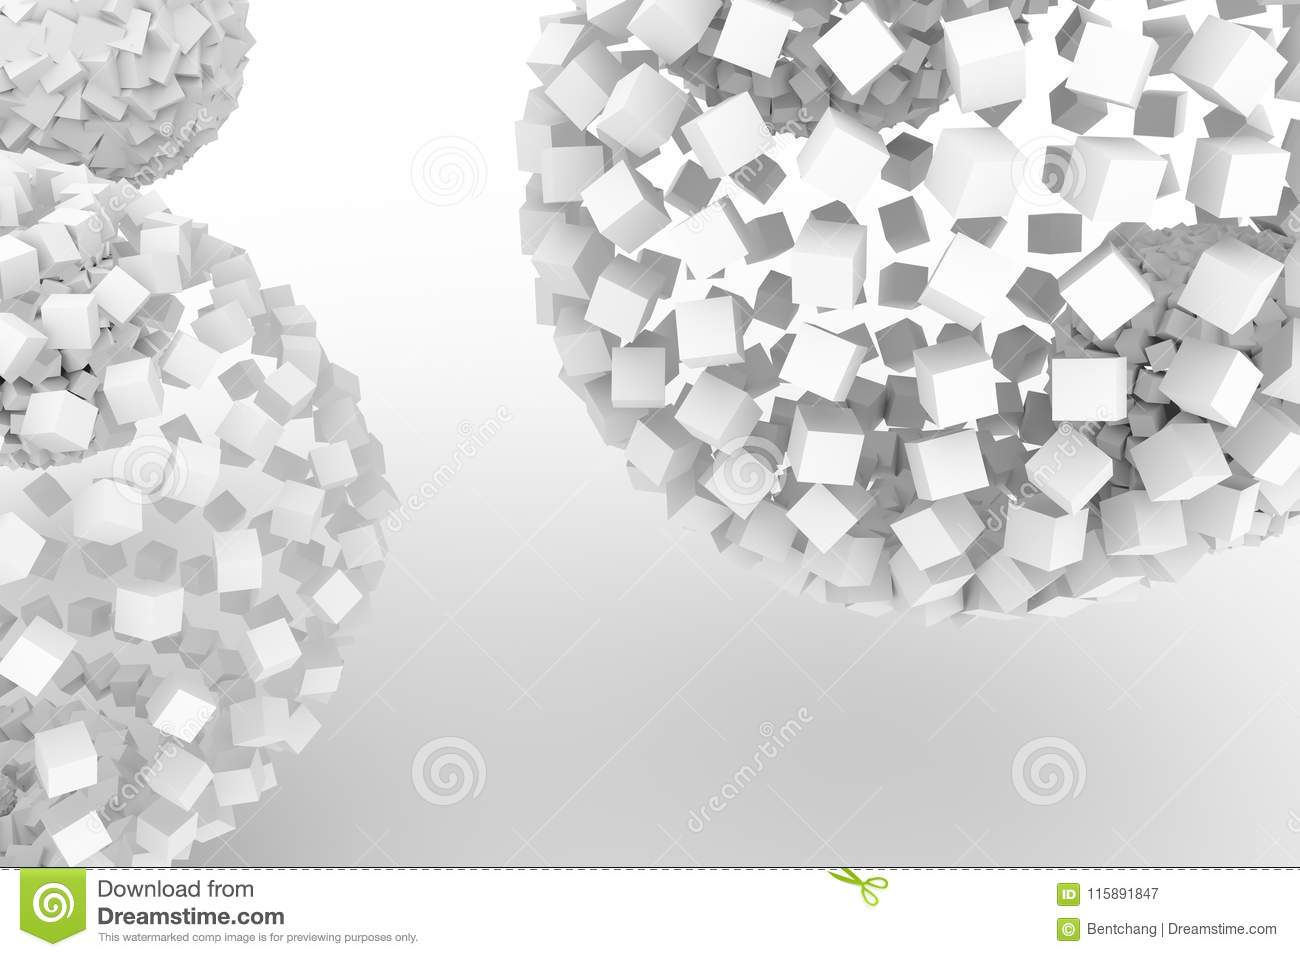 Spheres From Squares Modern Style Soft White Gray Background Artwork Perspectives